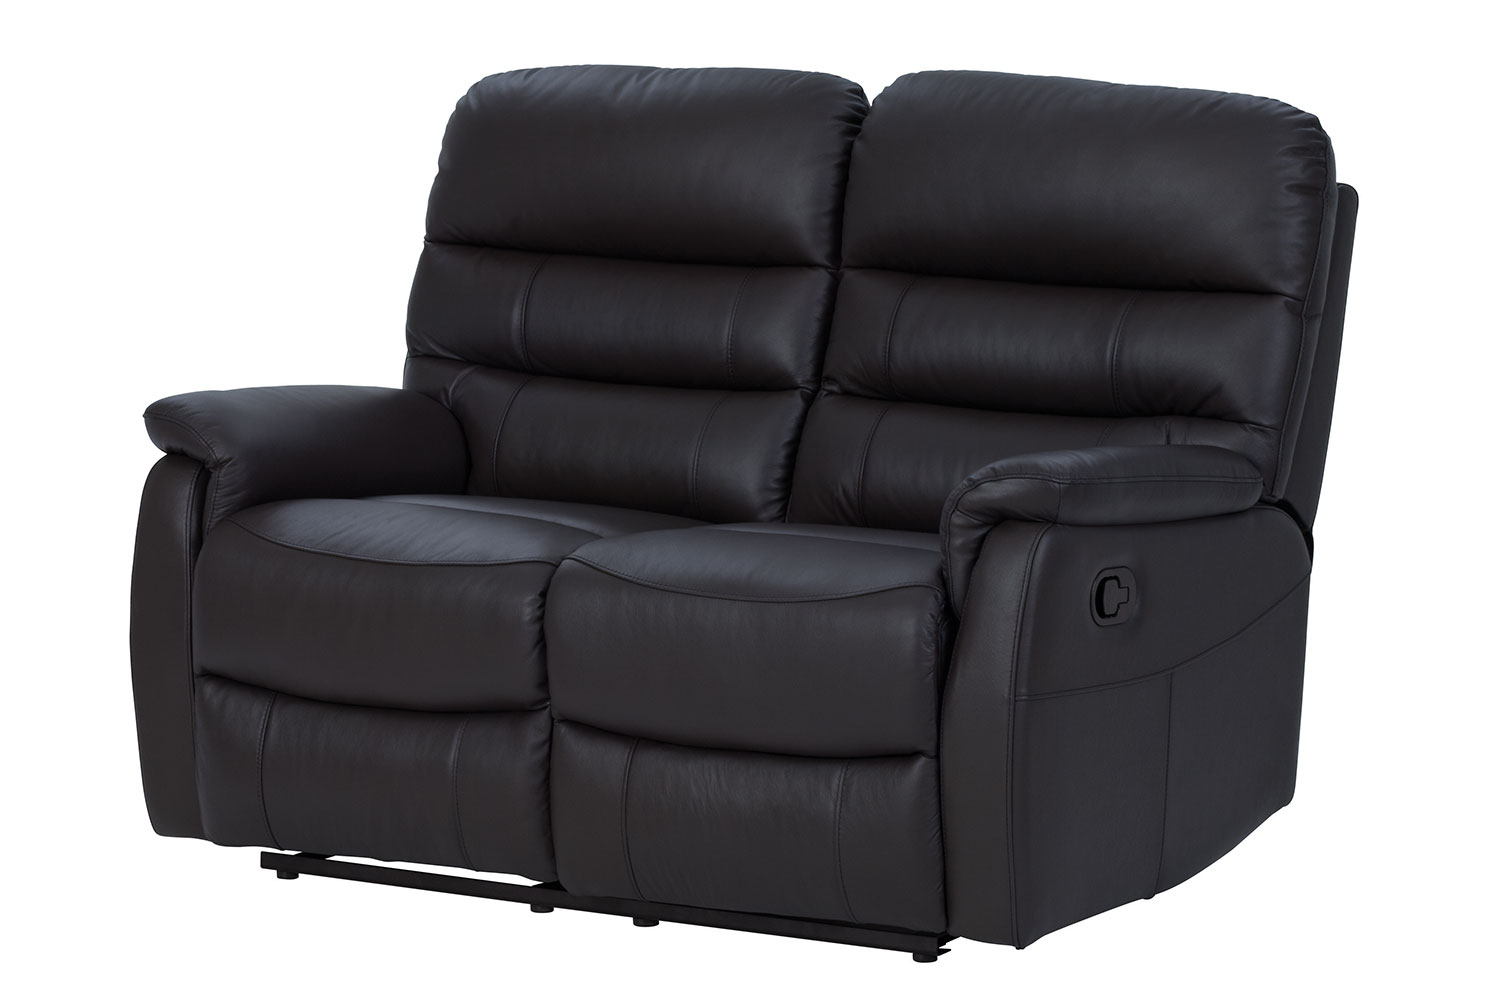 modena 2 seater reclining leather sofa huge luna recliner by vivin harvey